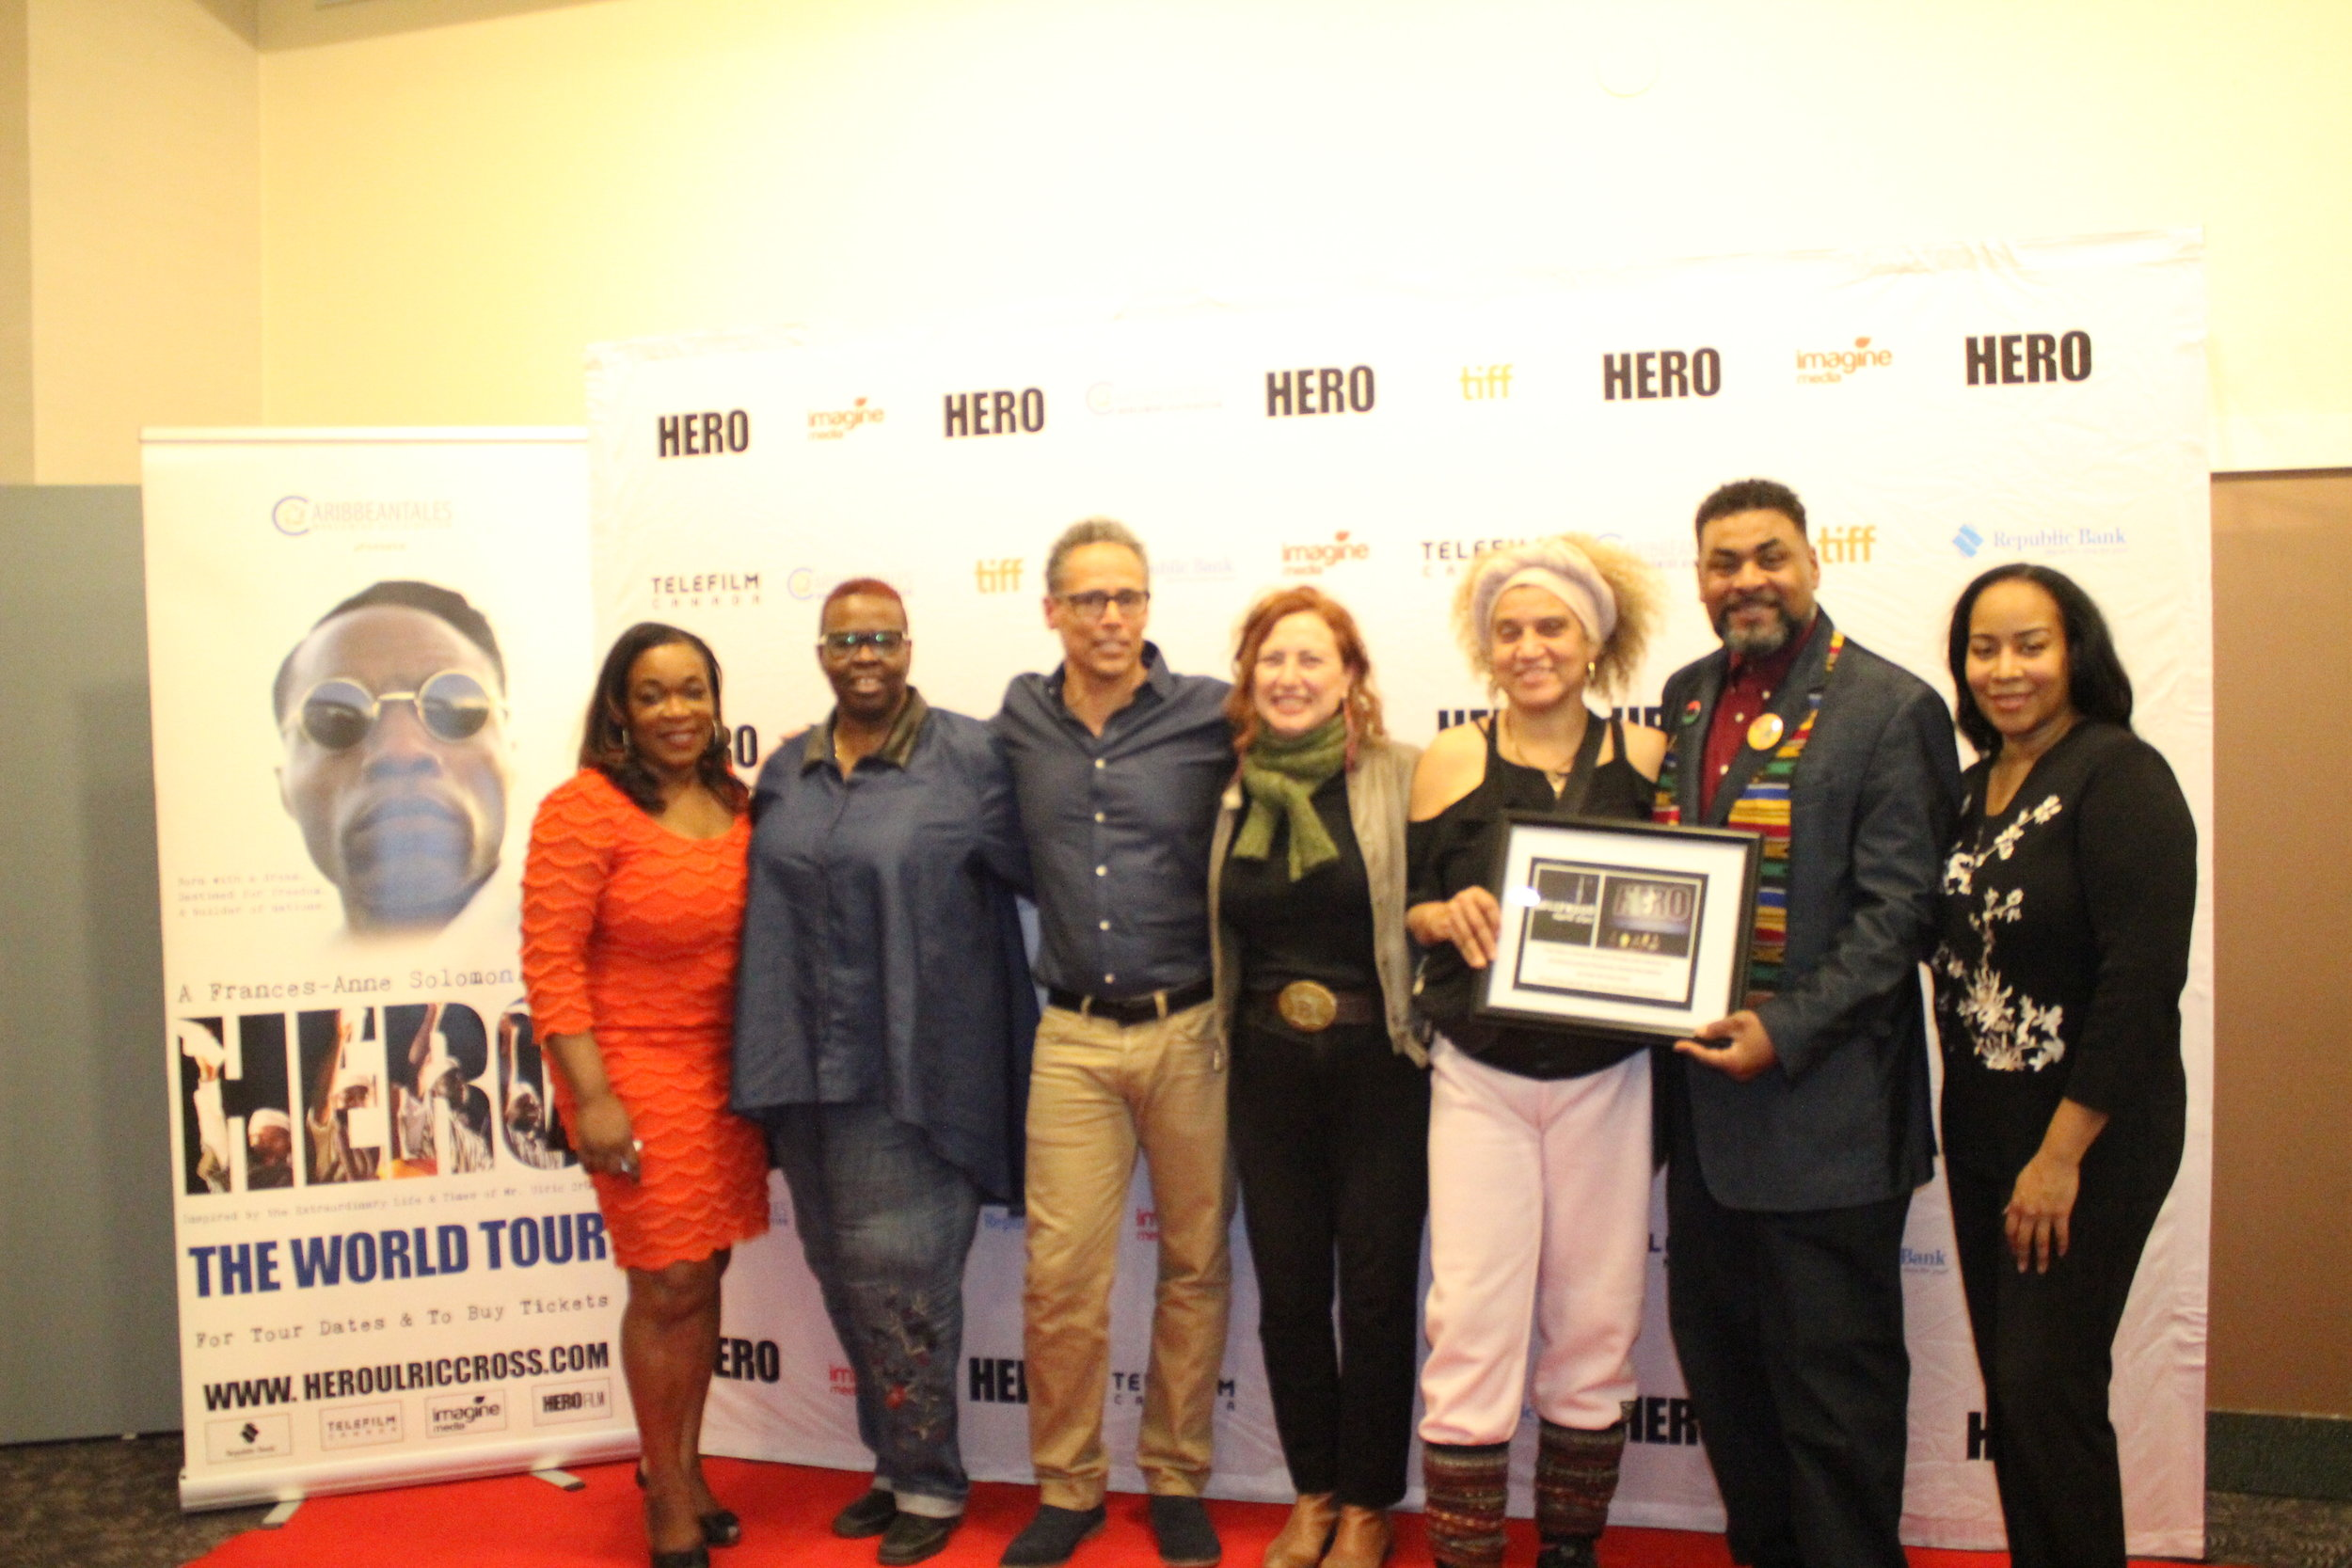 Photo-op with cast of HERO